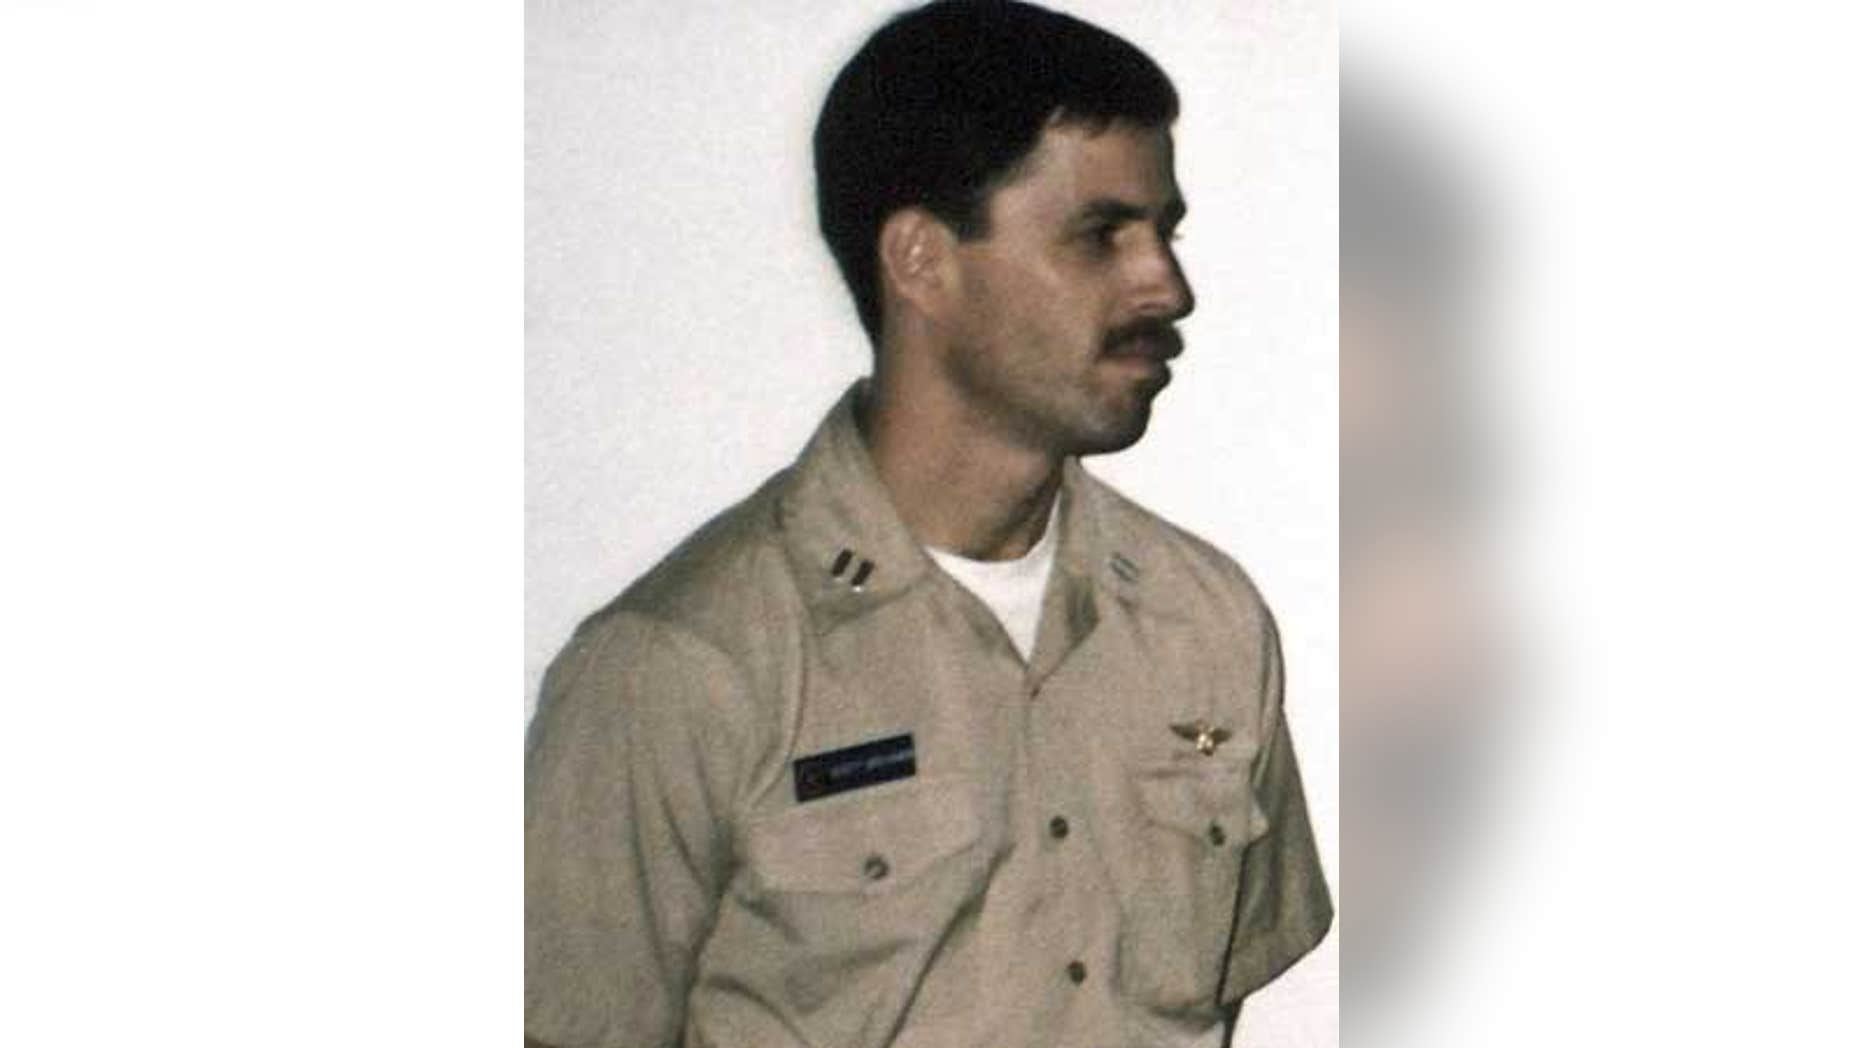 June 18, 1990: Michael 'Scott' Speicher aboard the carrier USS Saratoga when he was promoted to Lt. Commander.